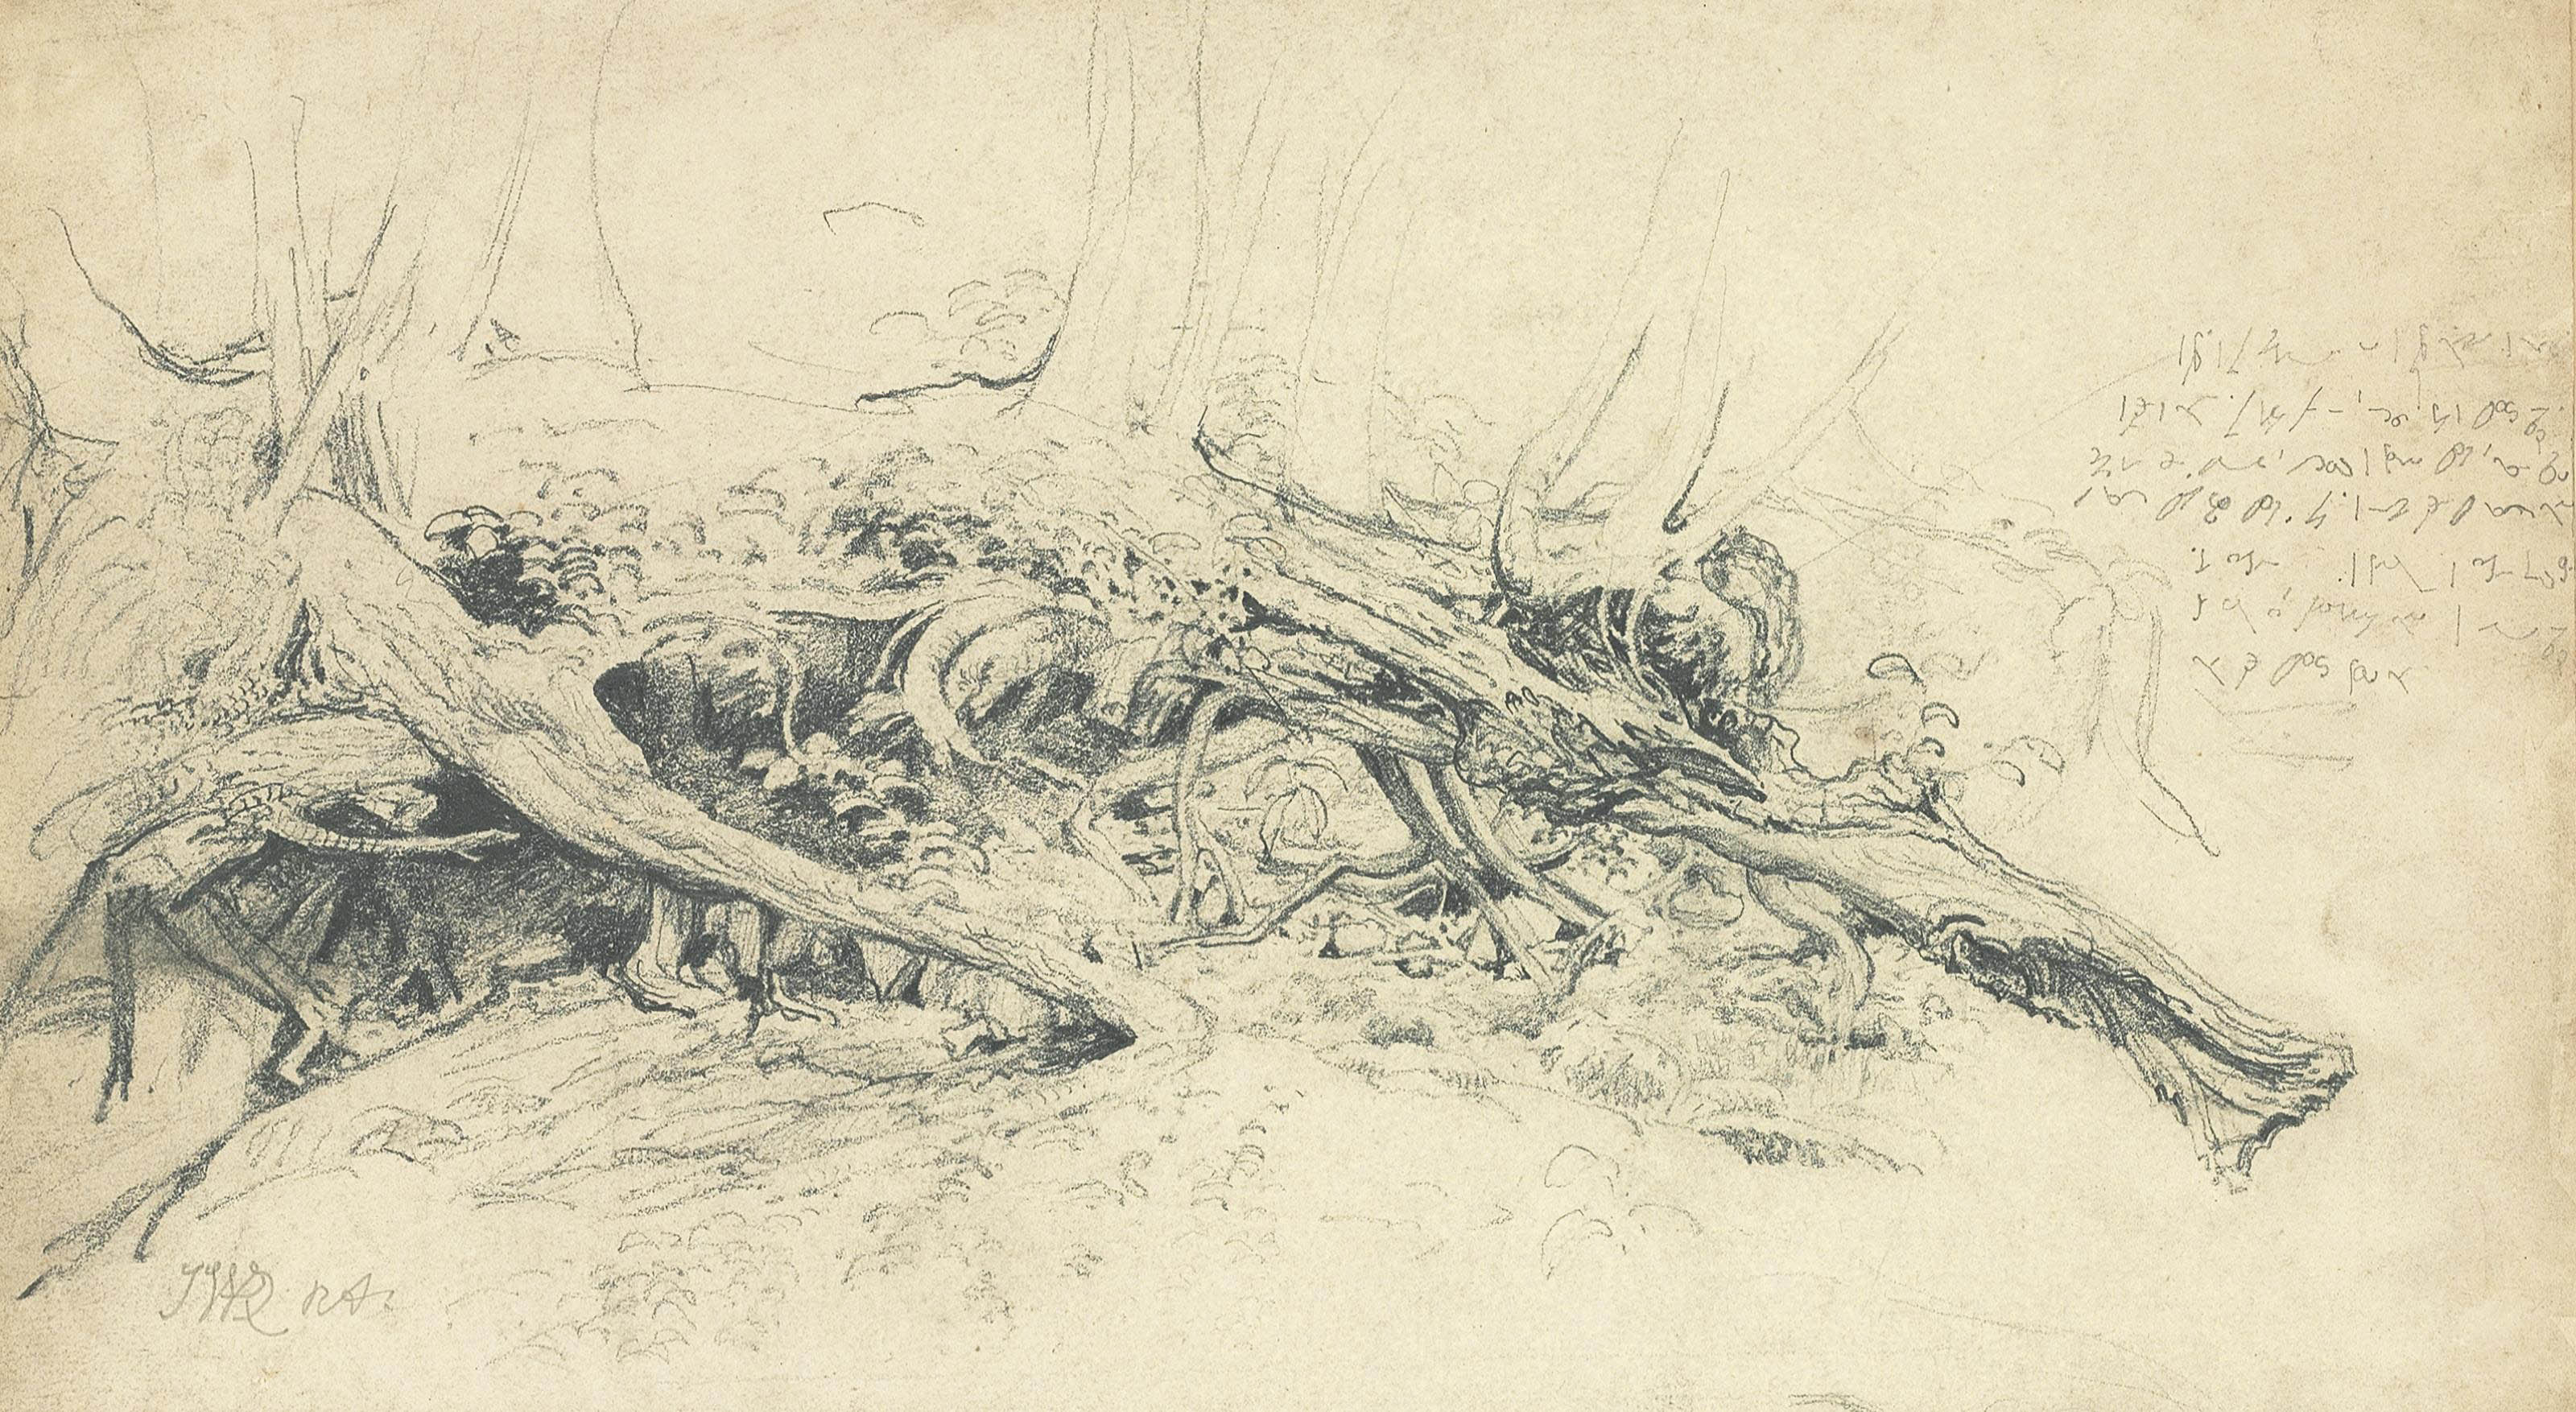 A fallen tree with exposed roots